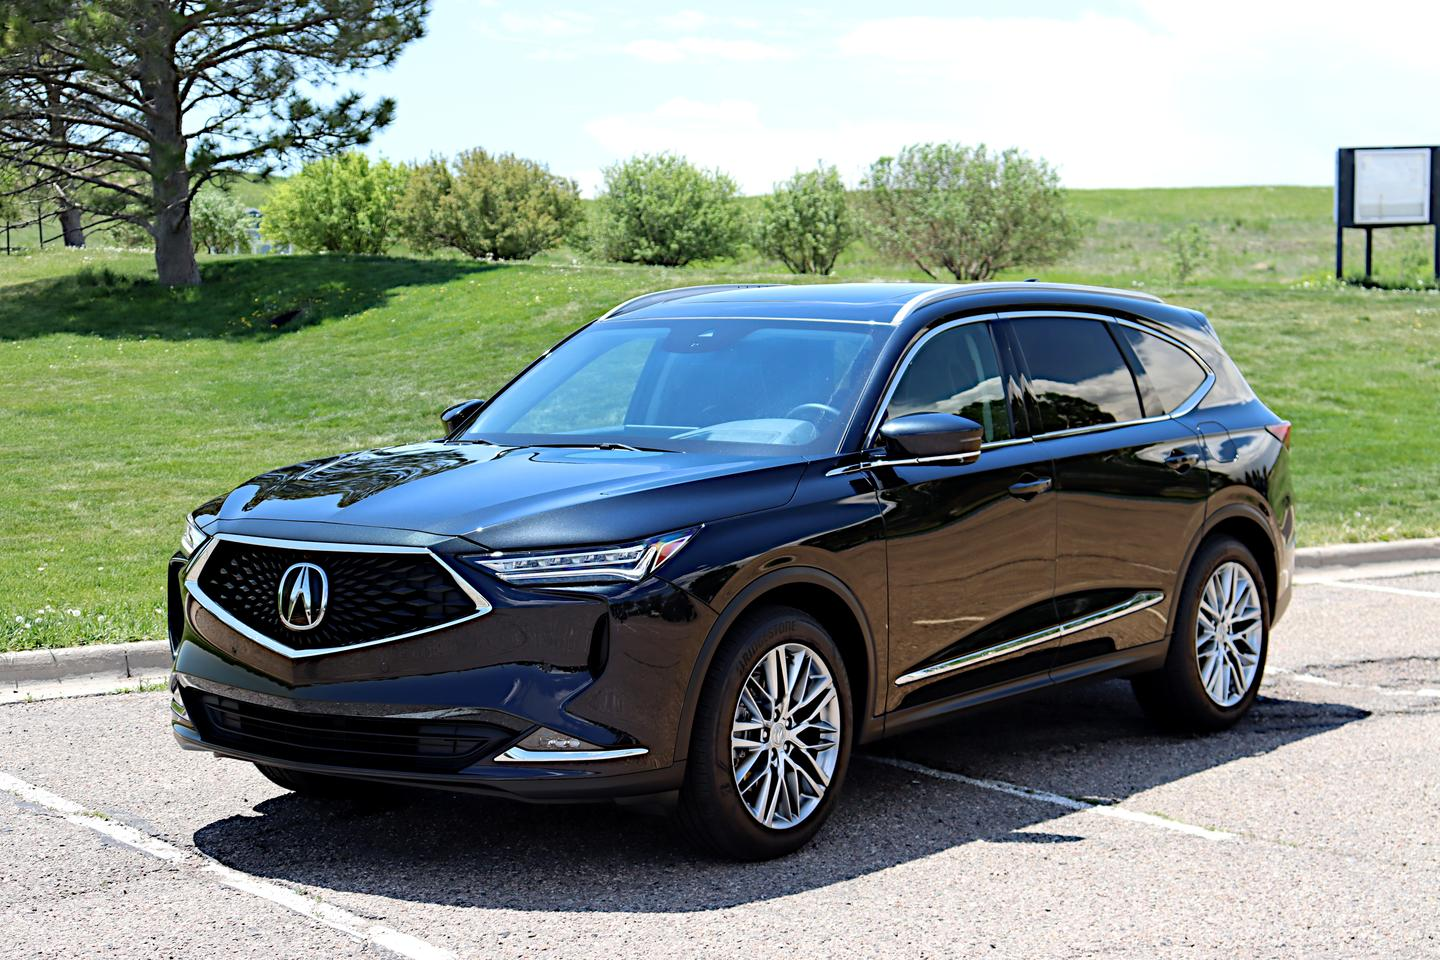 On the outside, the Acura MDX now has a more sharp-edged, aggressive look up front